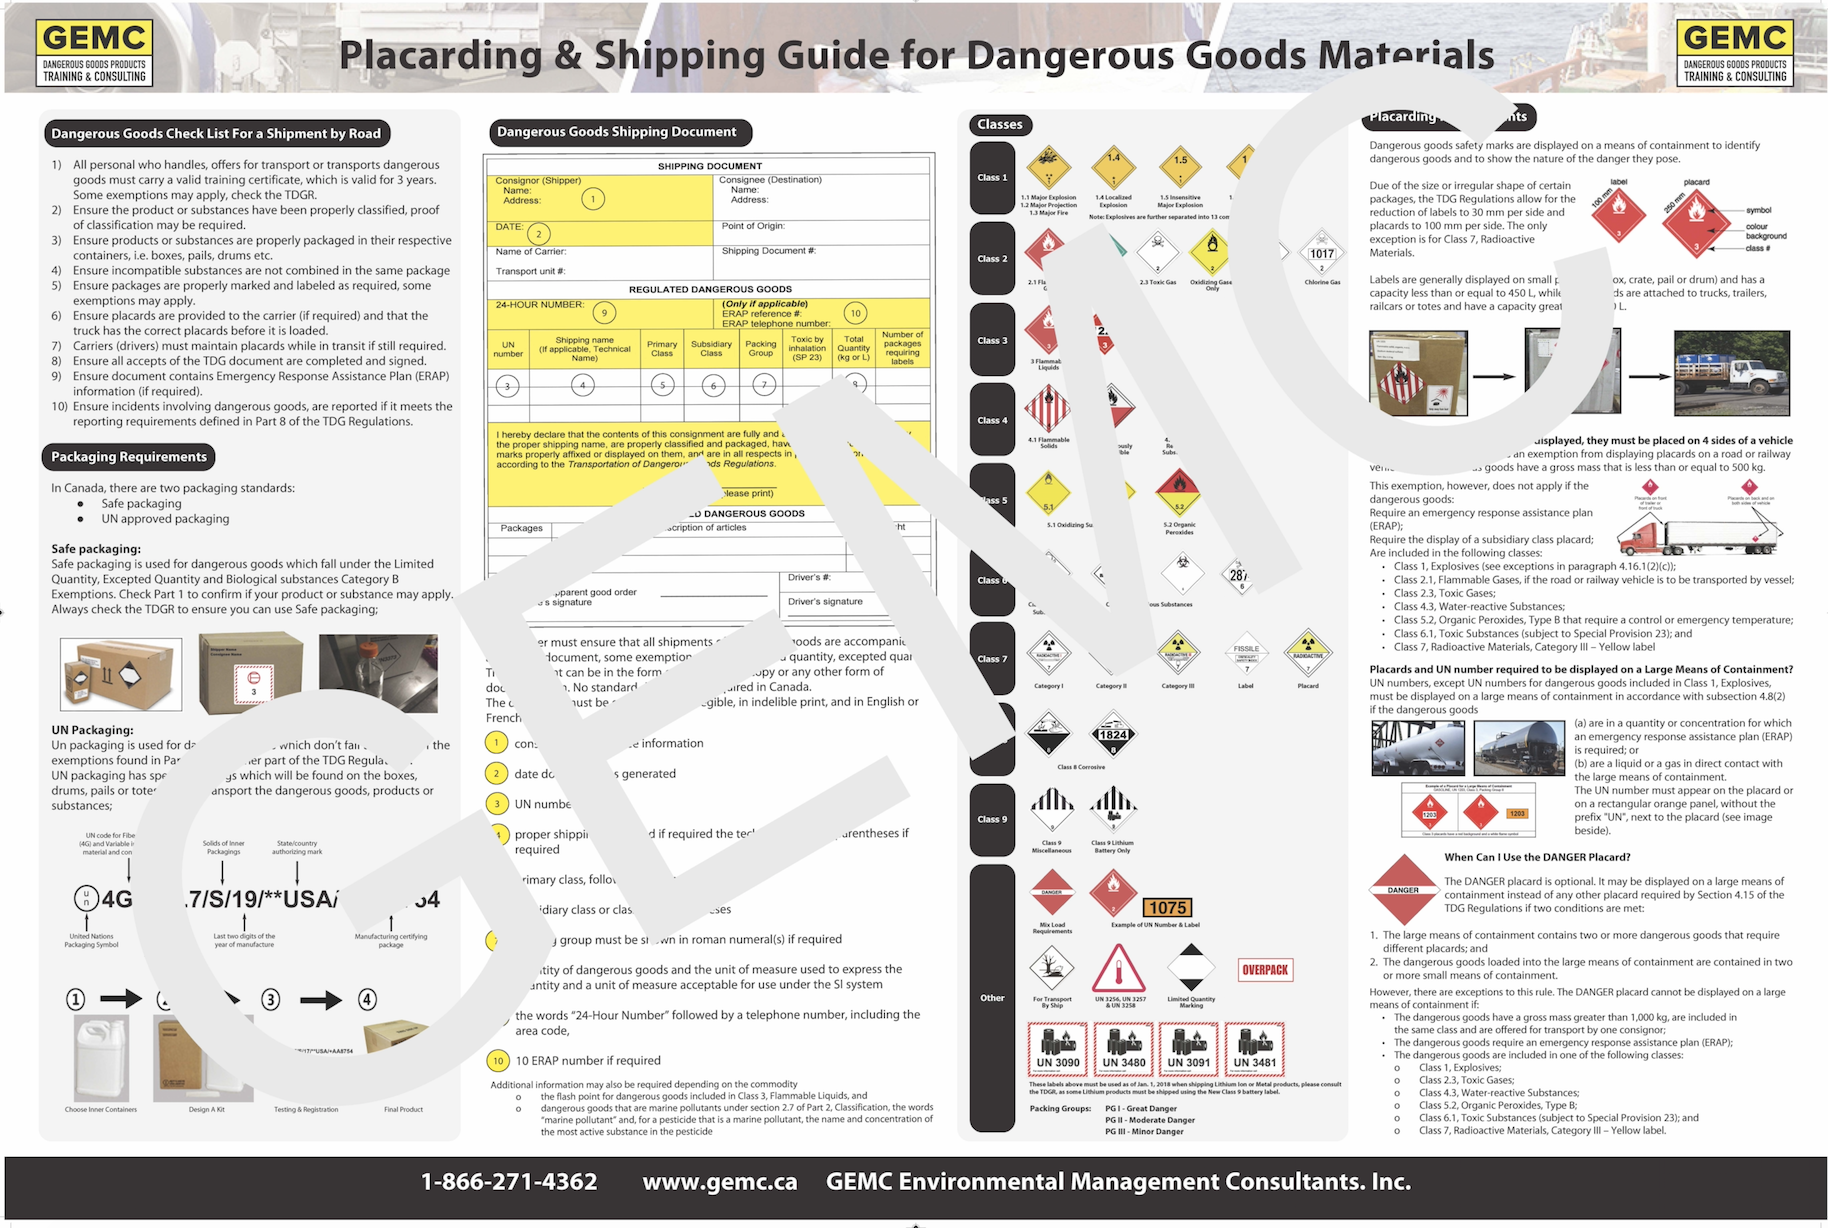 TDG wall poster size 24x30 includes Checklist, Packaging, Shipping Document example and Classification list